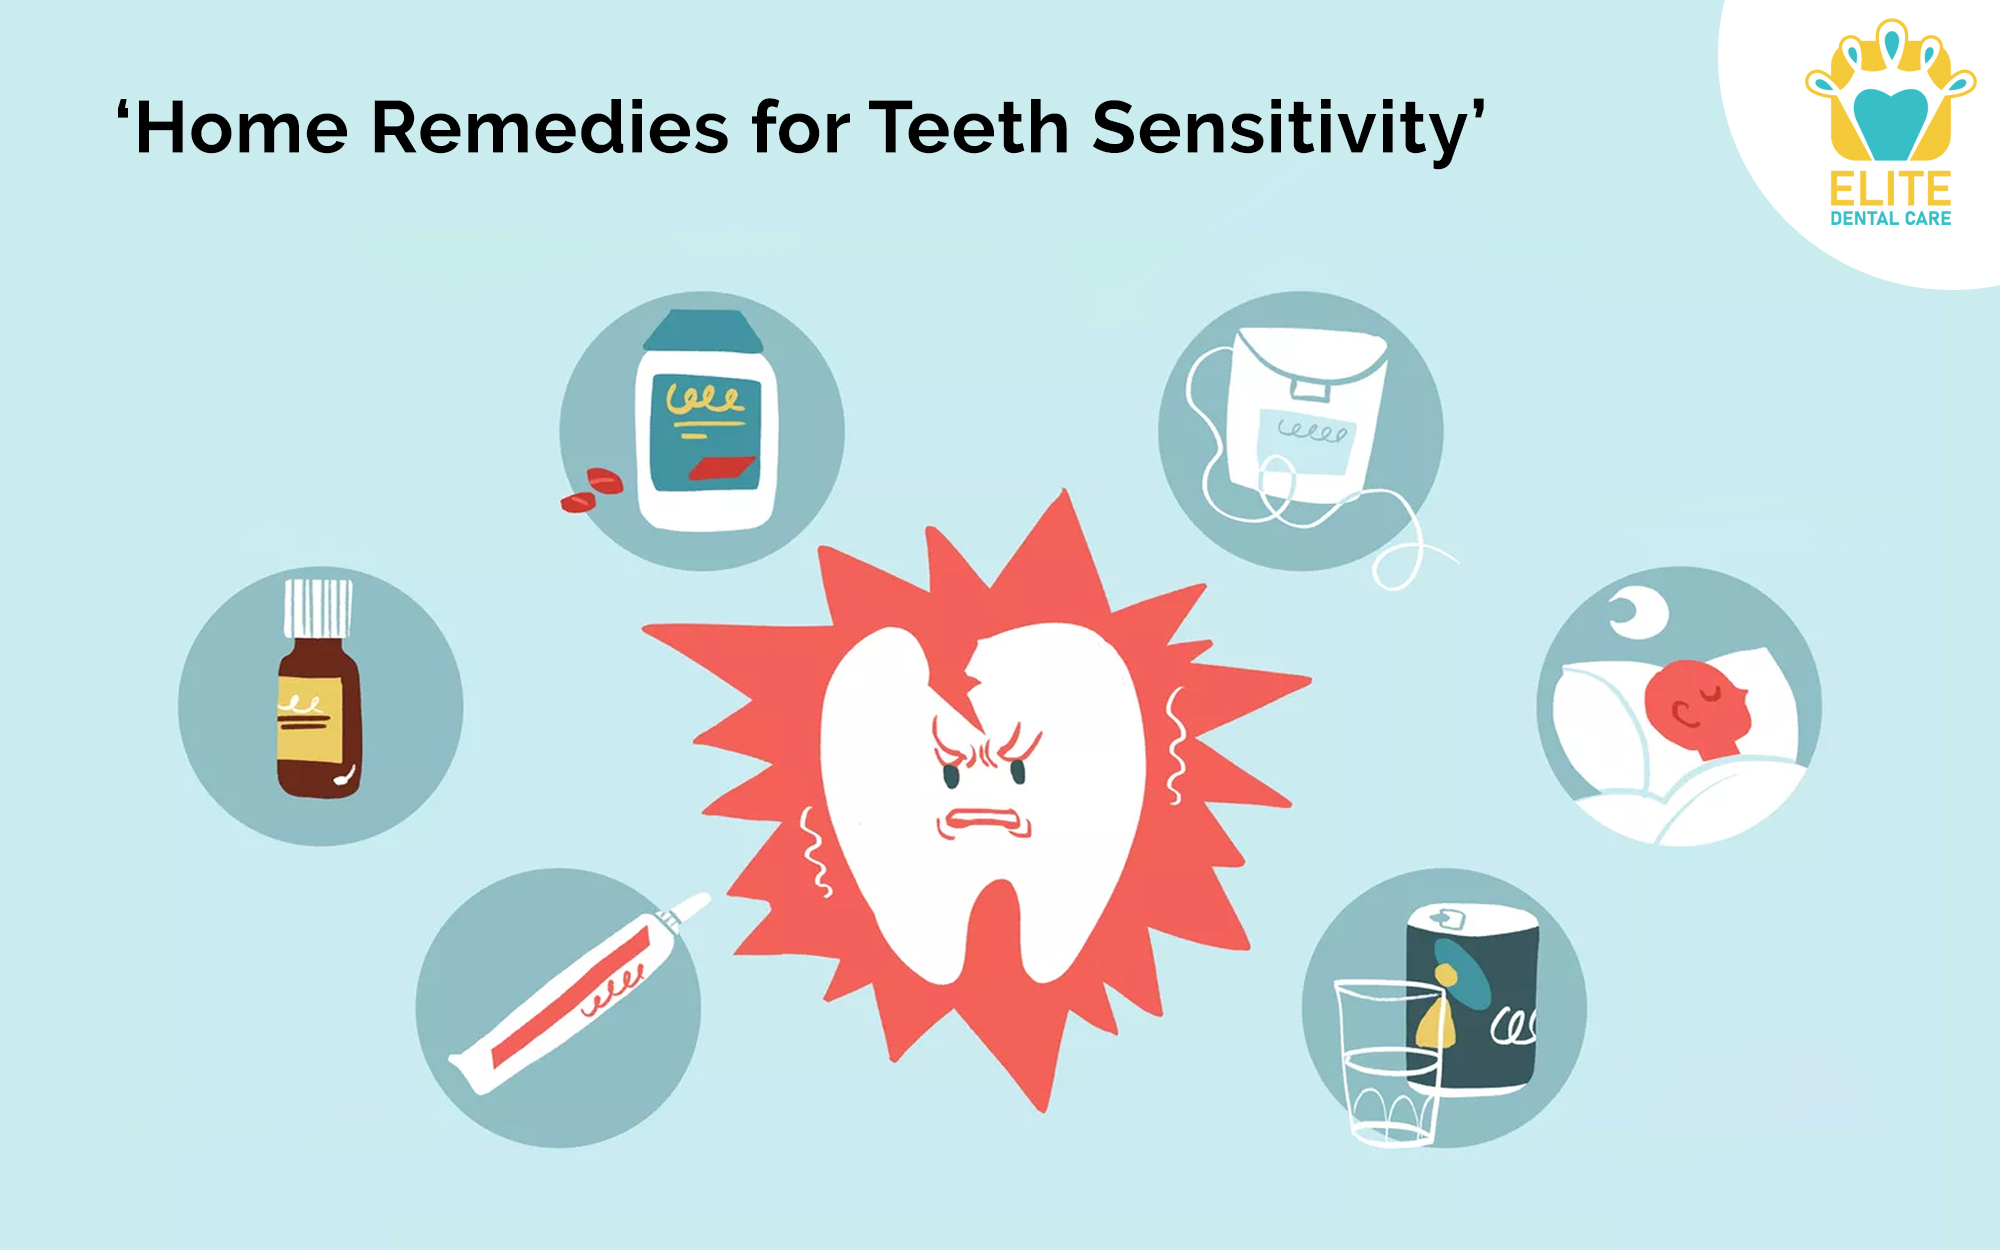 HOME REMEDIES FOR TEETH SENSITIVITY - ELITE DENTAL CARE TRACY